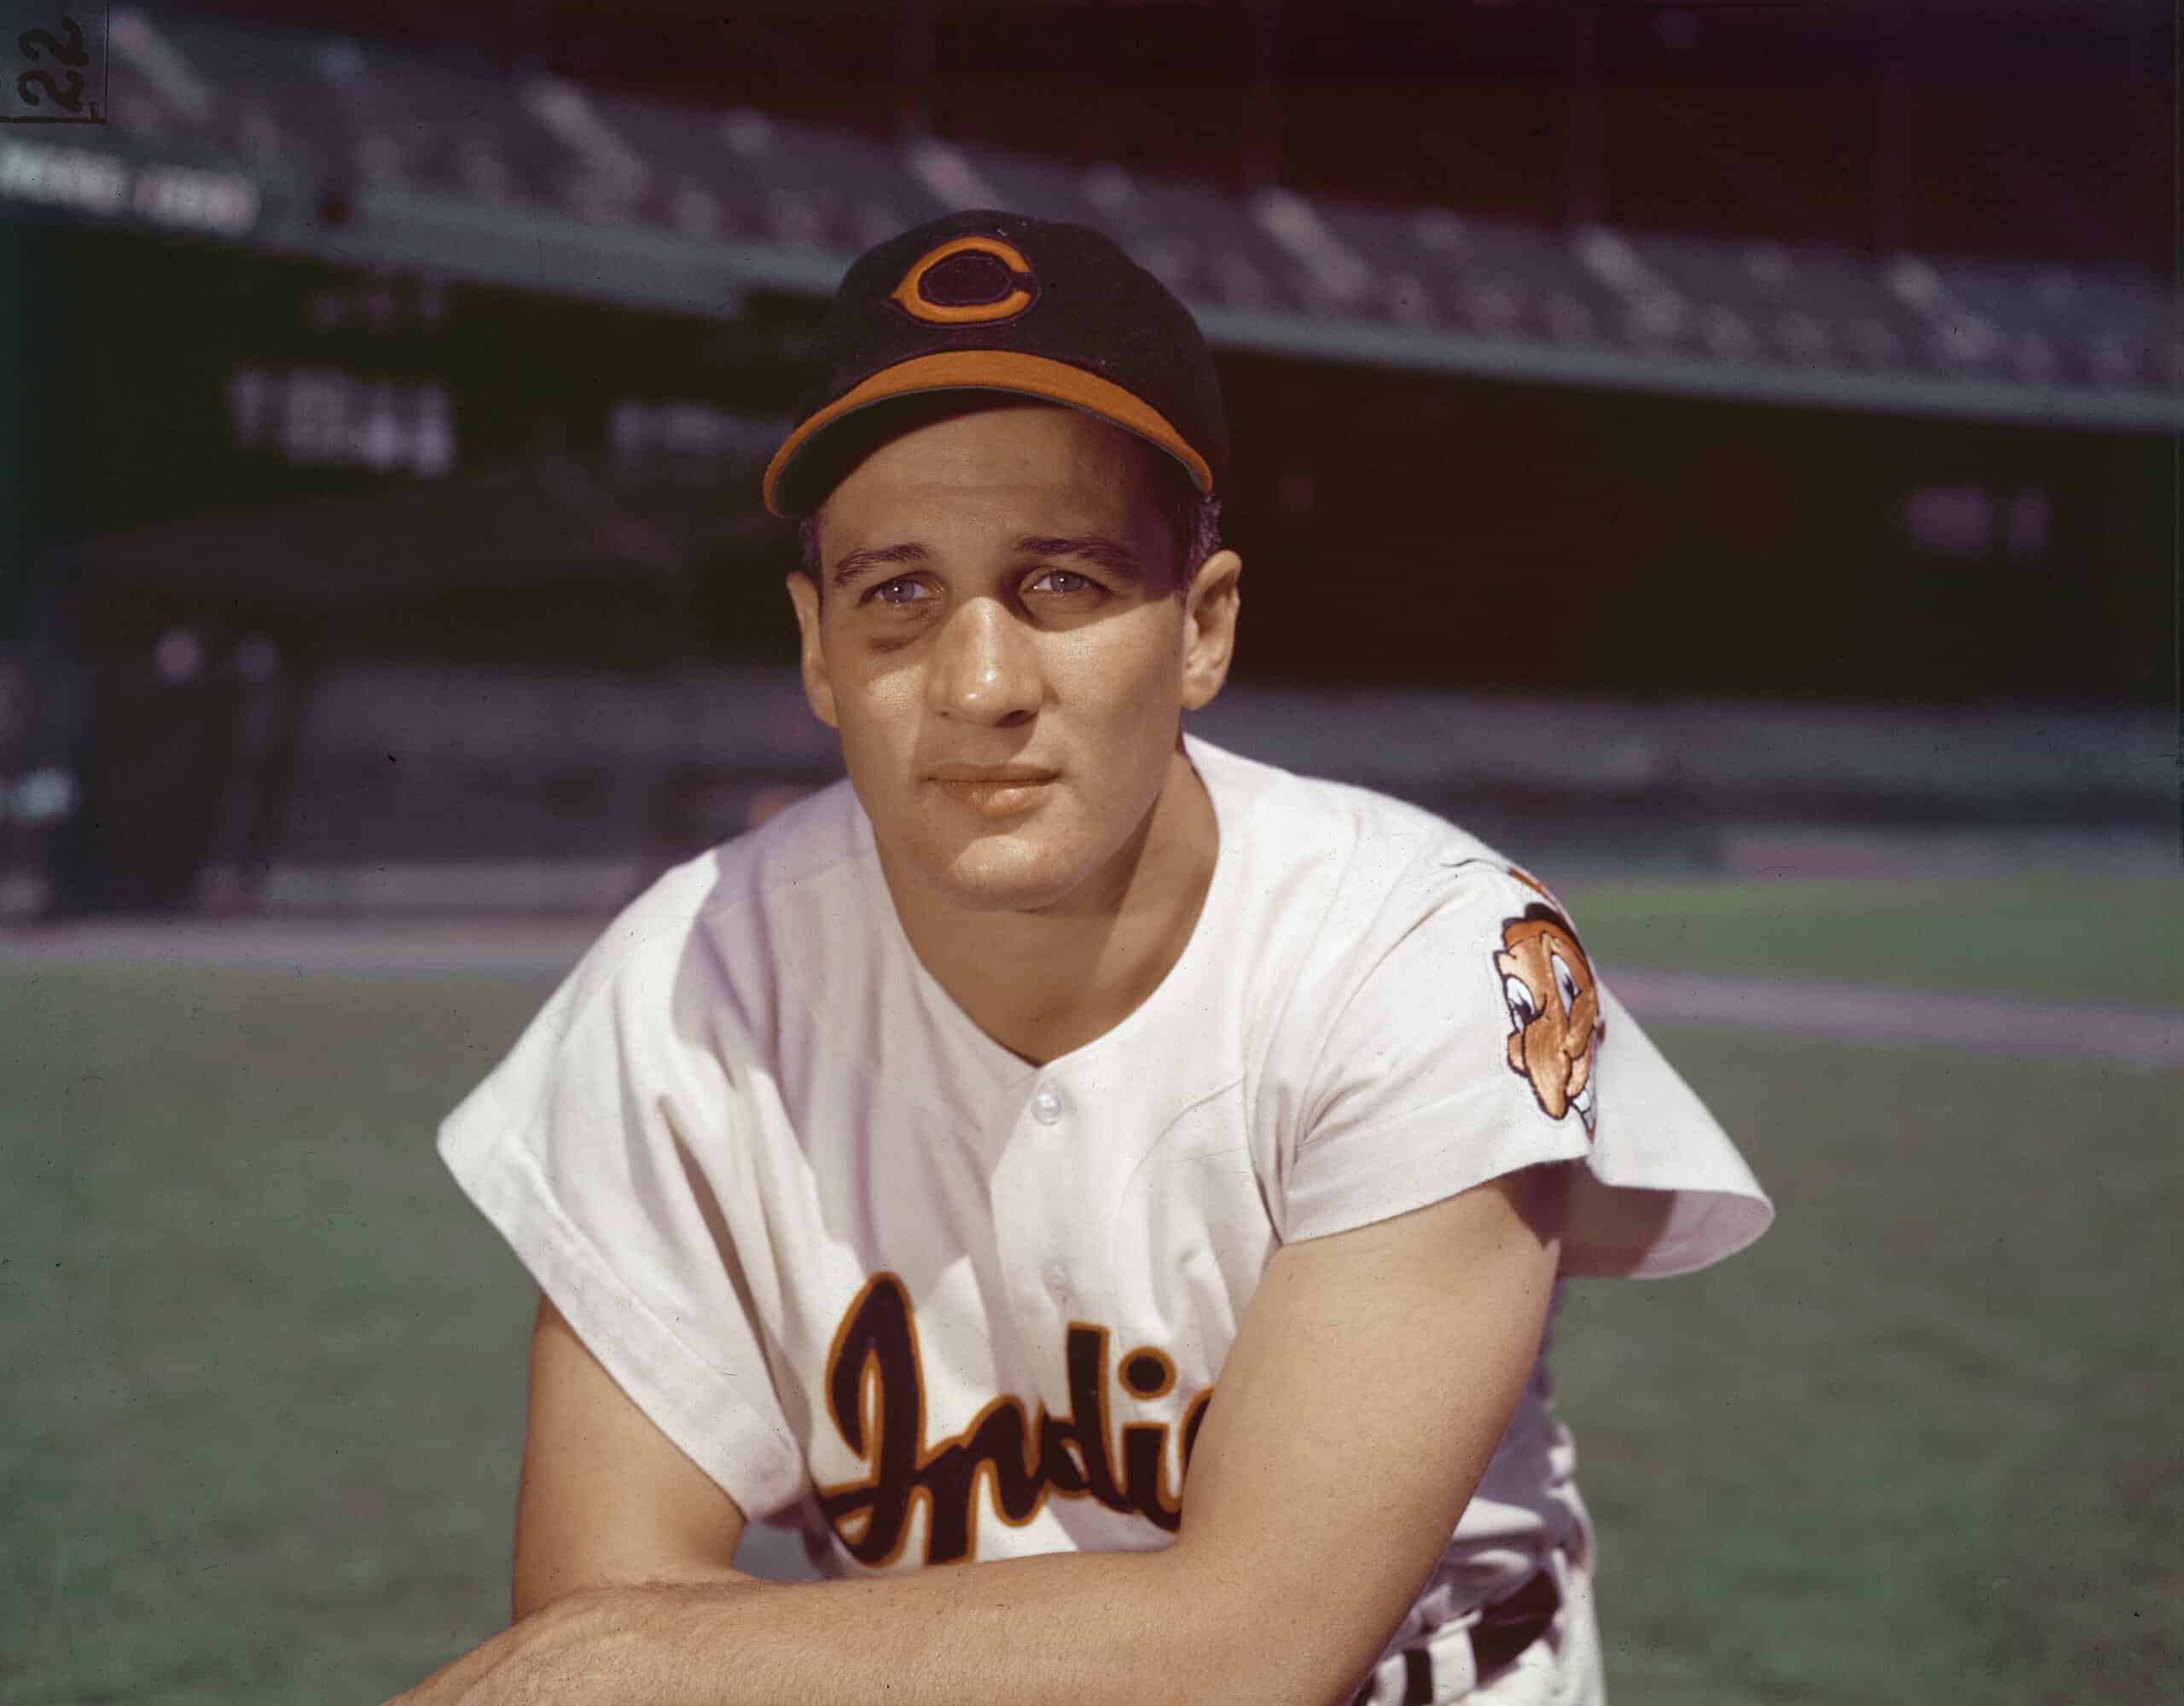 American professional baseball player Al Rosen, third baseman for the Cleveland Indians, kneeling in an empty stadium, 1950s.